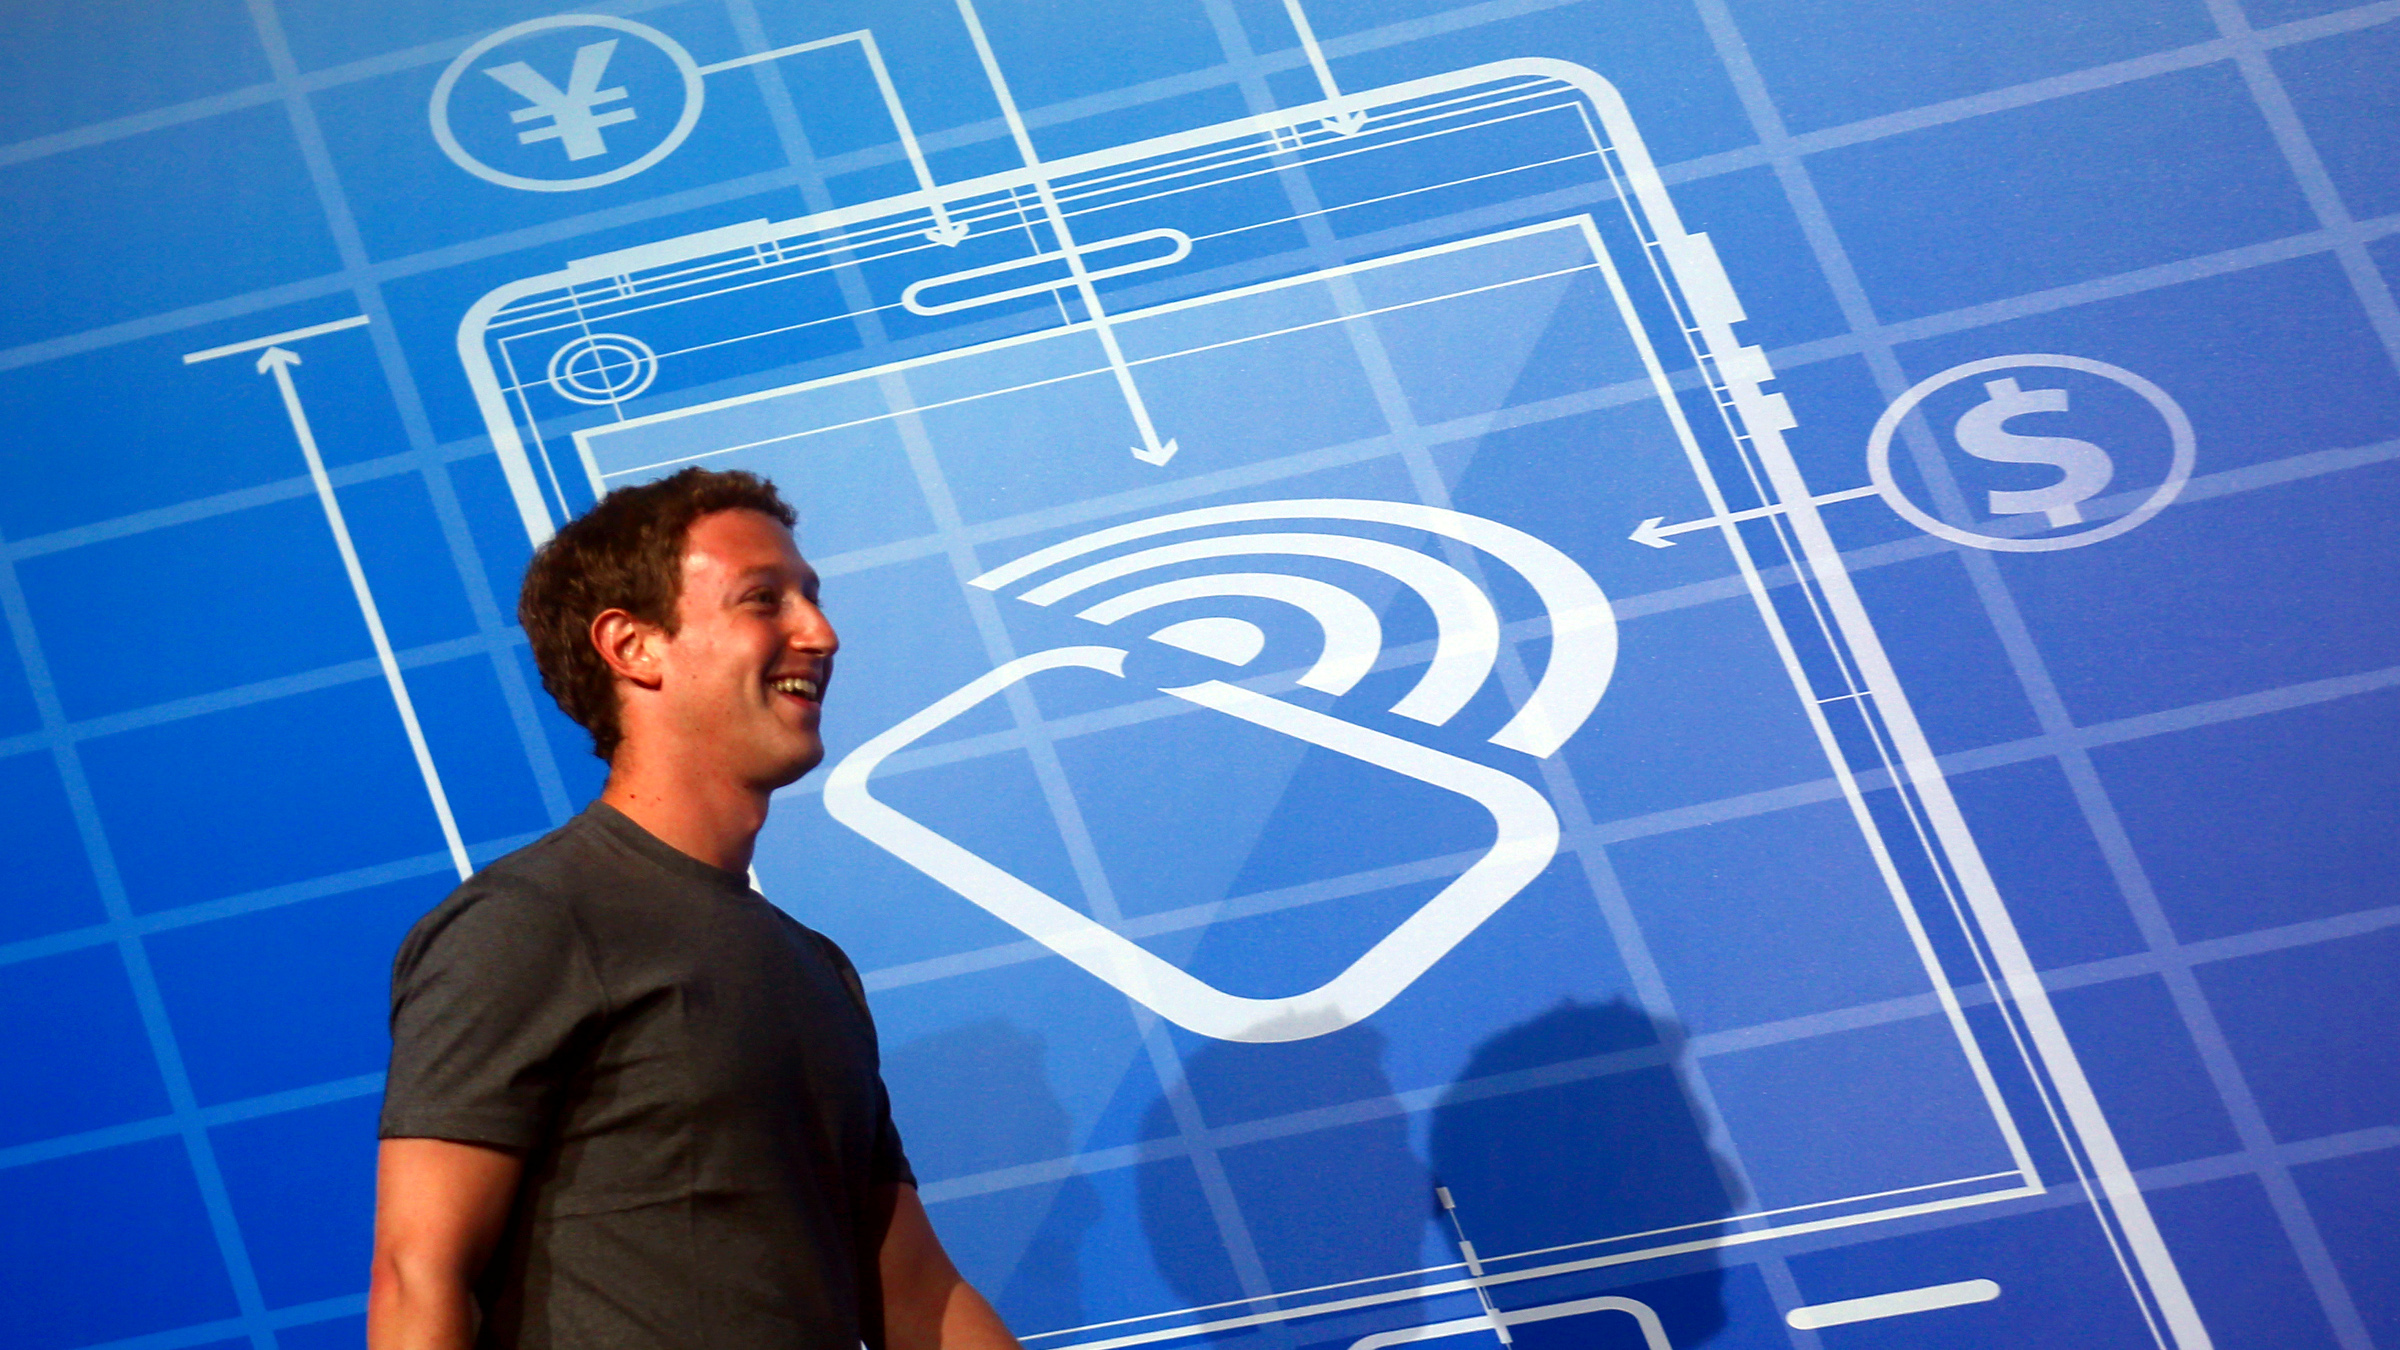 Facebook Chief Executive Officer Mark Zuckerberg smiles as he arrives at the stage to deliver a keynote speech during the Mobile World Congress in Barcelona February 24, 2014. Zuckerberg will take a victory lap at the world's largest mobile technology conference in Barcelona on Monday, after beating out Google Inc in a $19 billion acquisition of free messaging service WhatsApp.